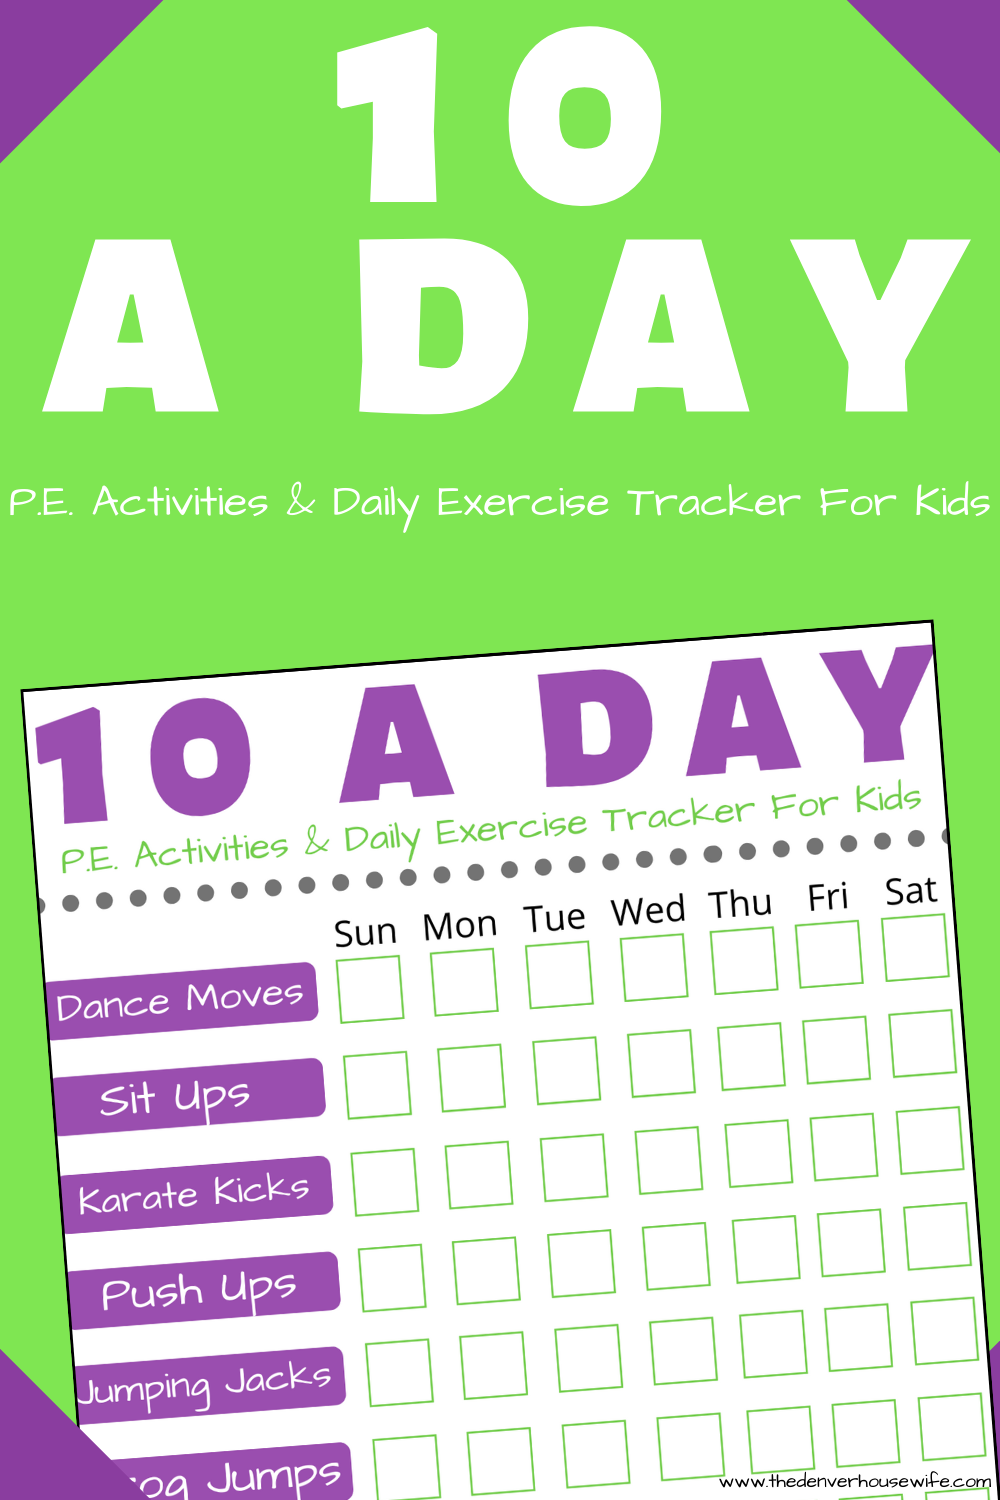 Free Printable: PE Activities for Kids to do Daily